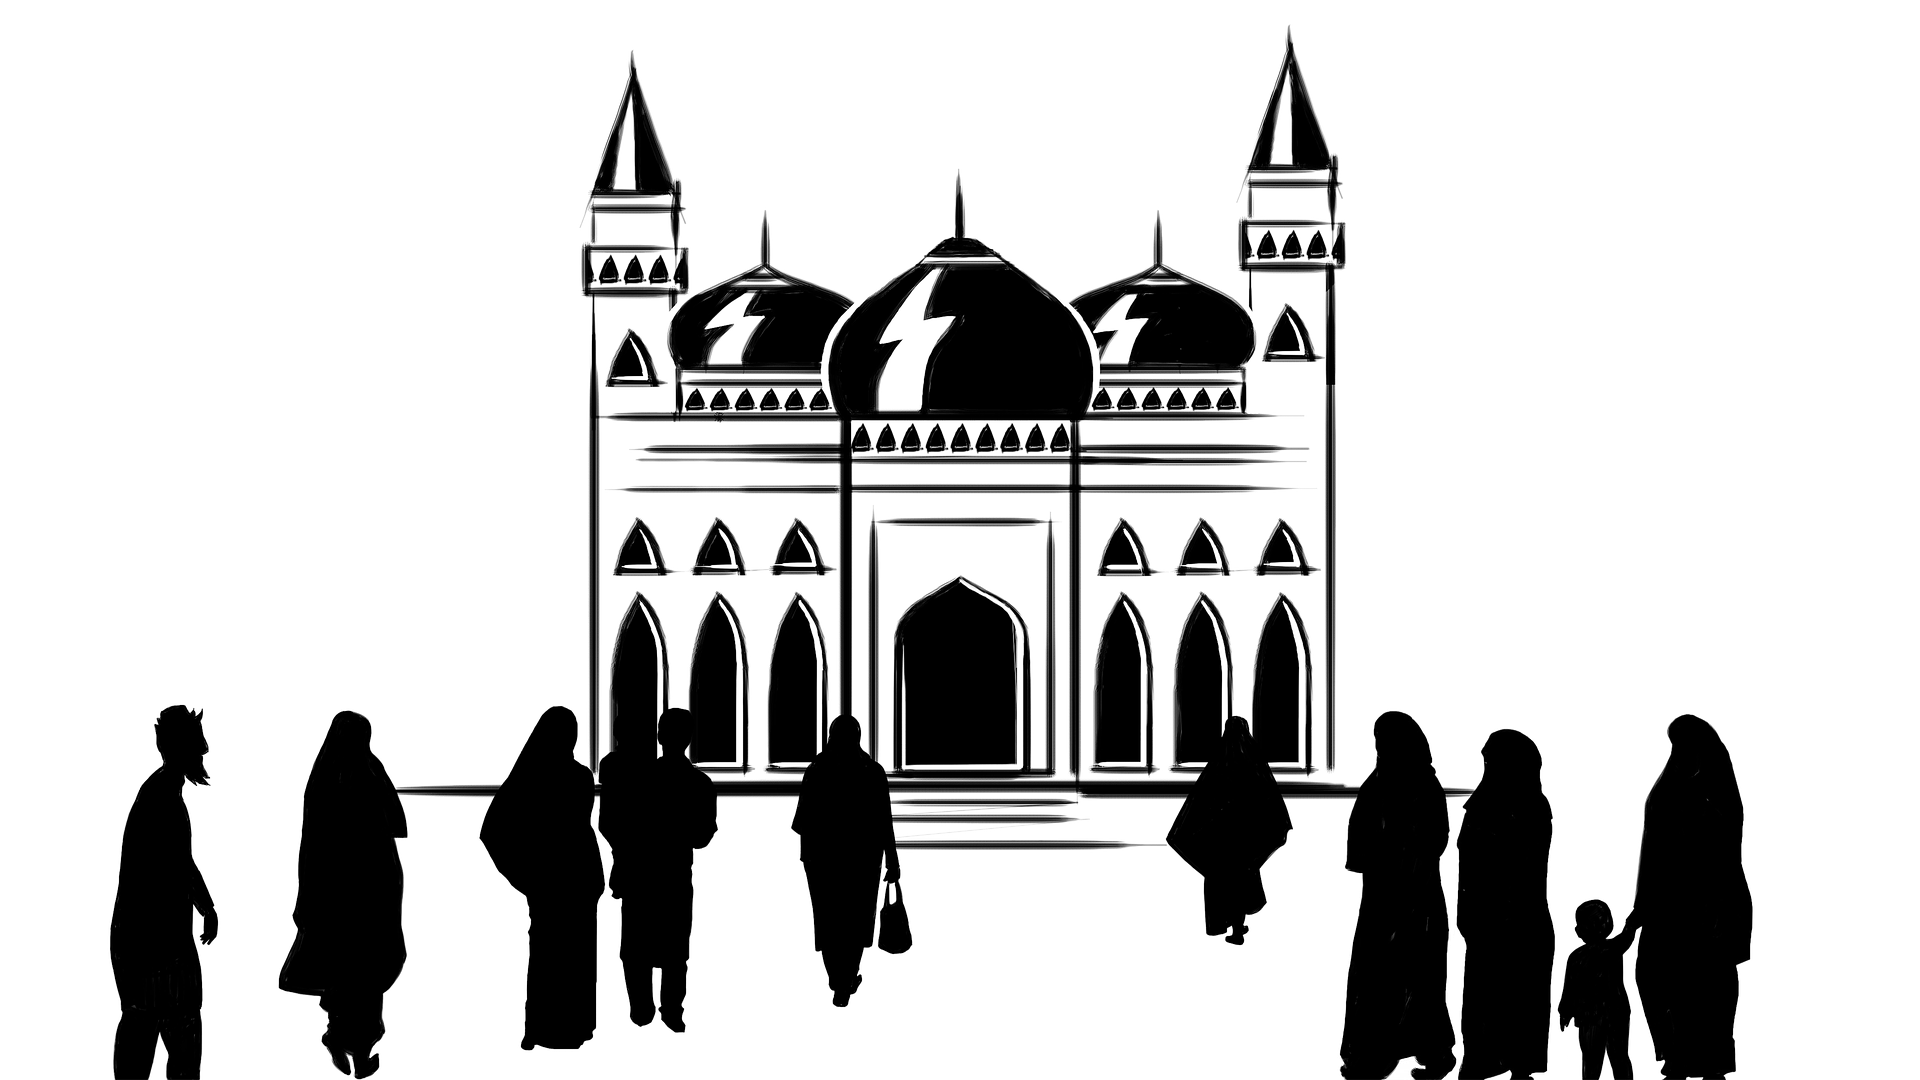 Islam drawing islamic building. The beloved prophet of